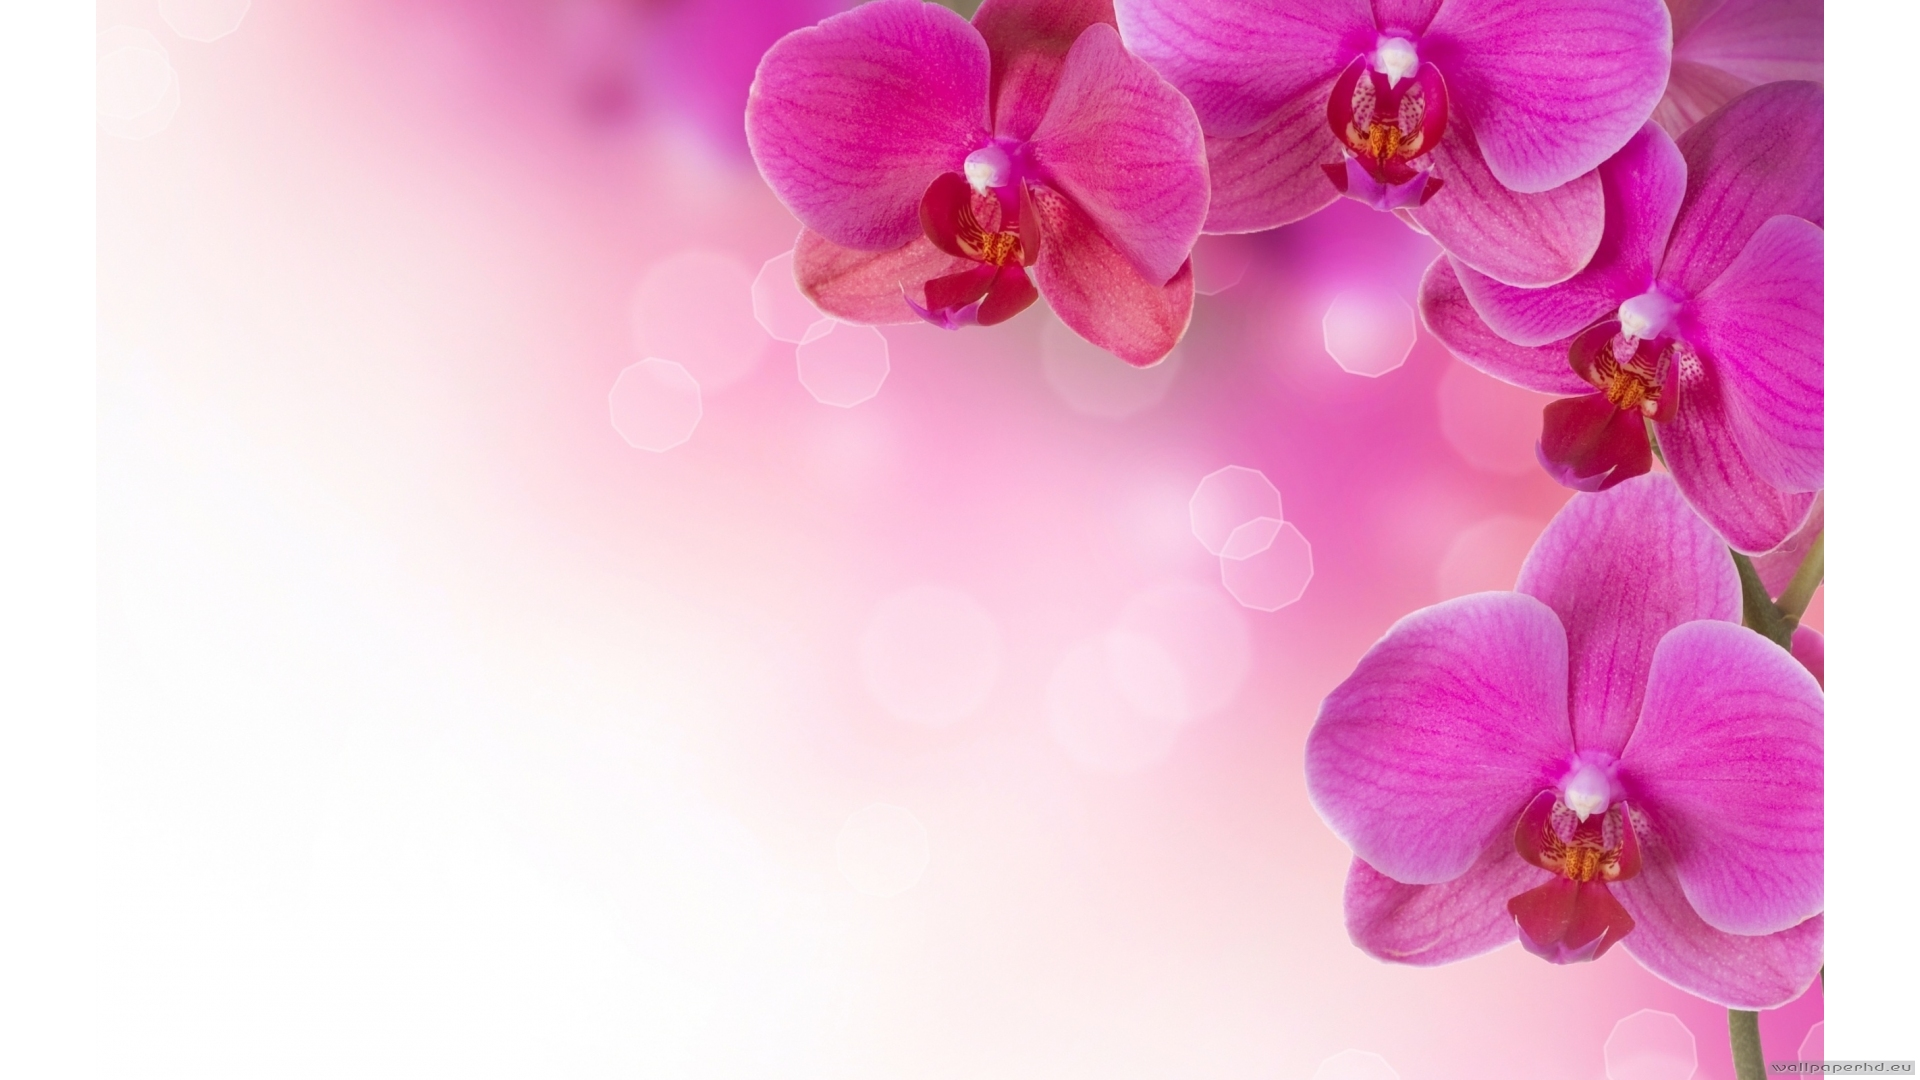 Orchid Wallpapers Free Download in Resolution